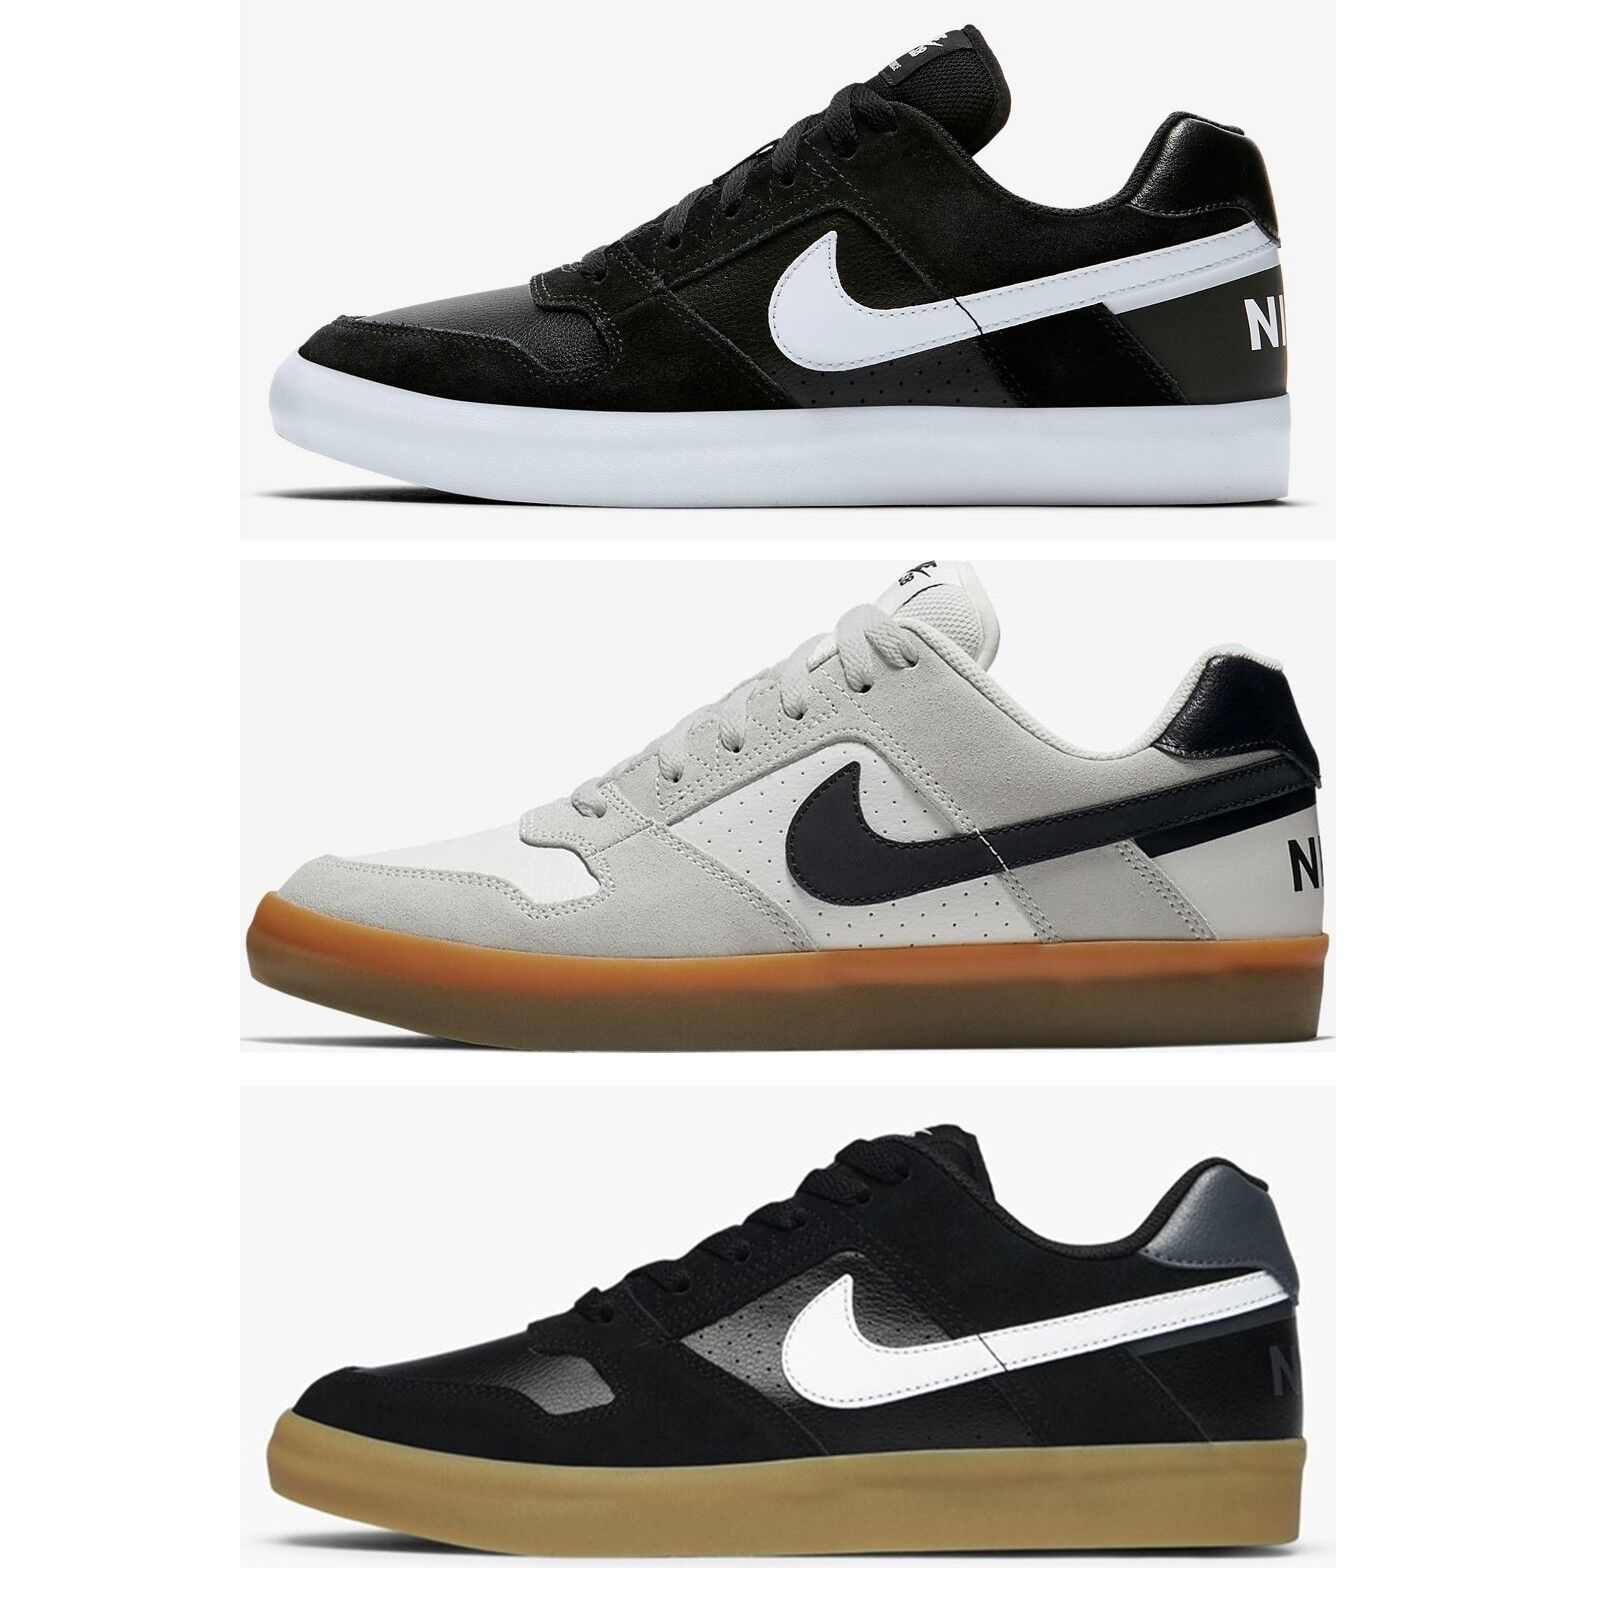 Nike SB Delta Force Vulc Sports Skateboarding Shoes Sneakers Trainers Black 942237-005,White 942237-101